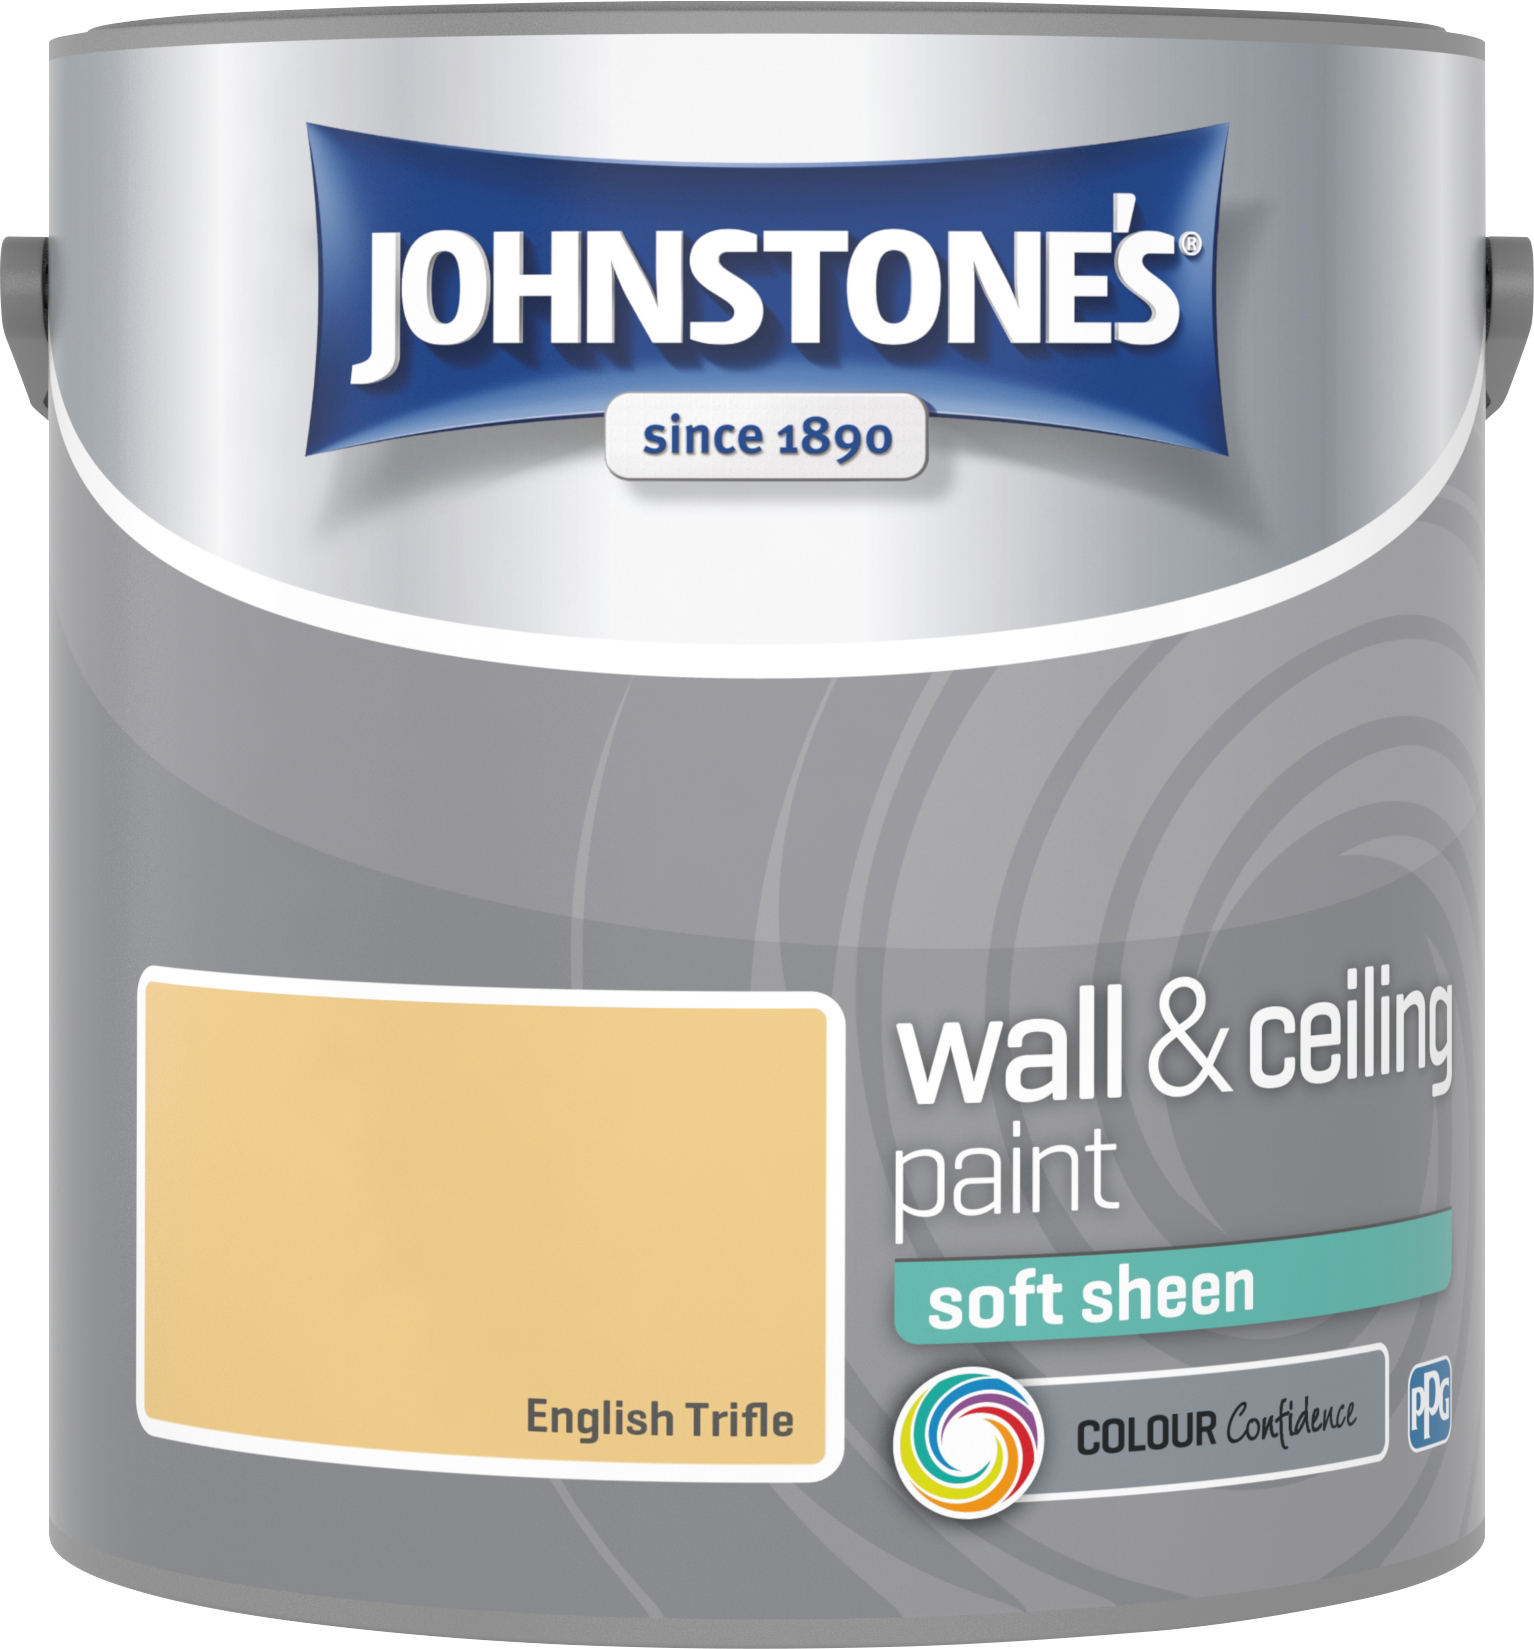 Johnstone's 2.5 Litre Soft Sheen Emulsion Paint - English Trifle